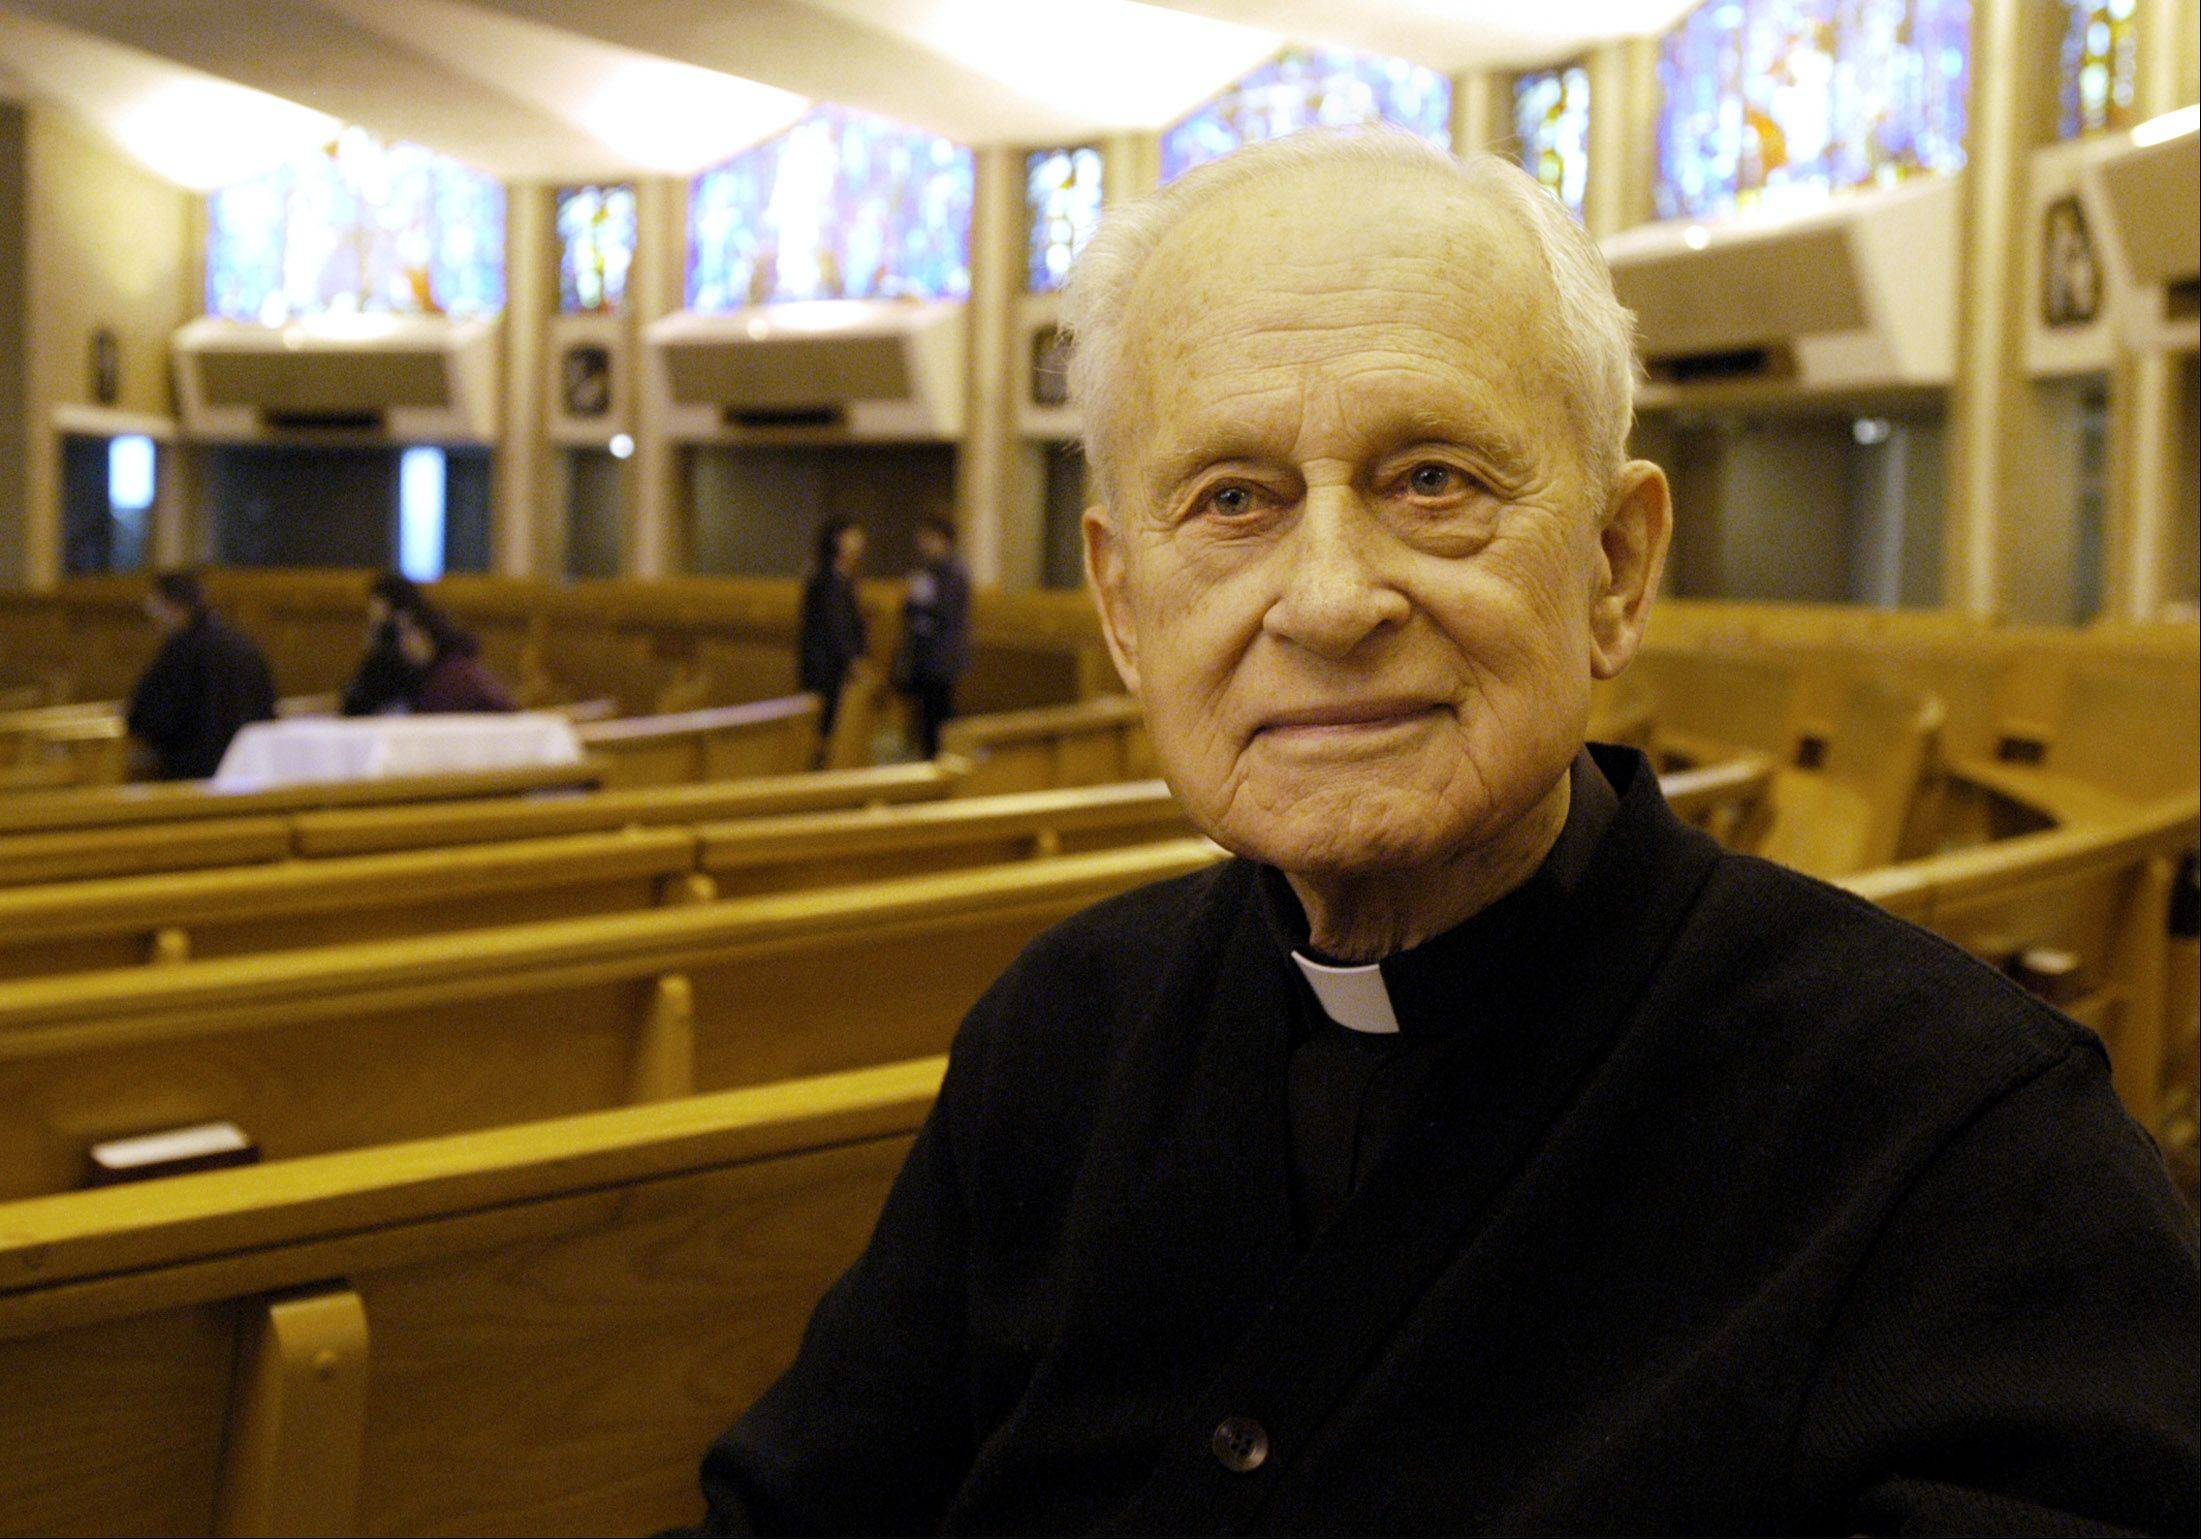 In 2004, the Rev. Victor Ivers said his philosophy remained unchanged in his more than 60 years of ministry. �I love God and serve people,� he said.